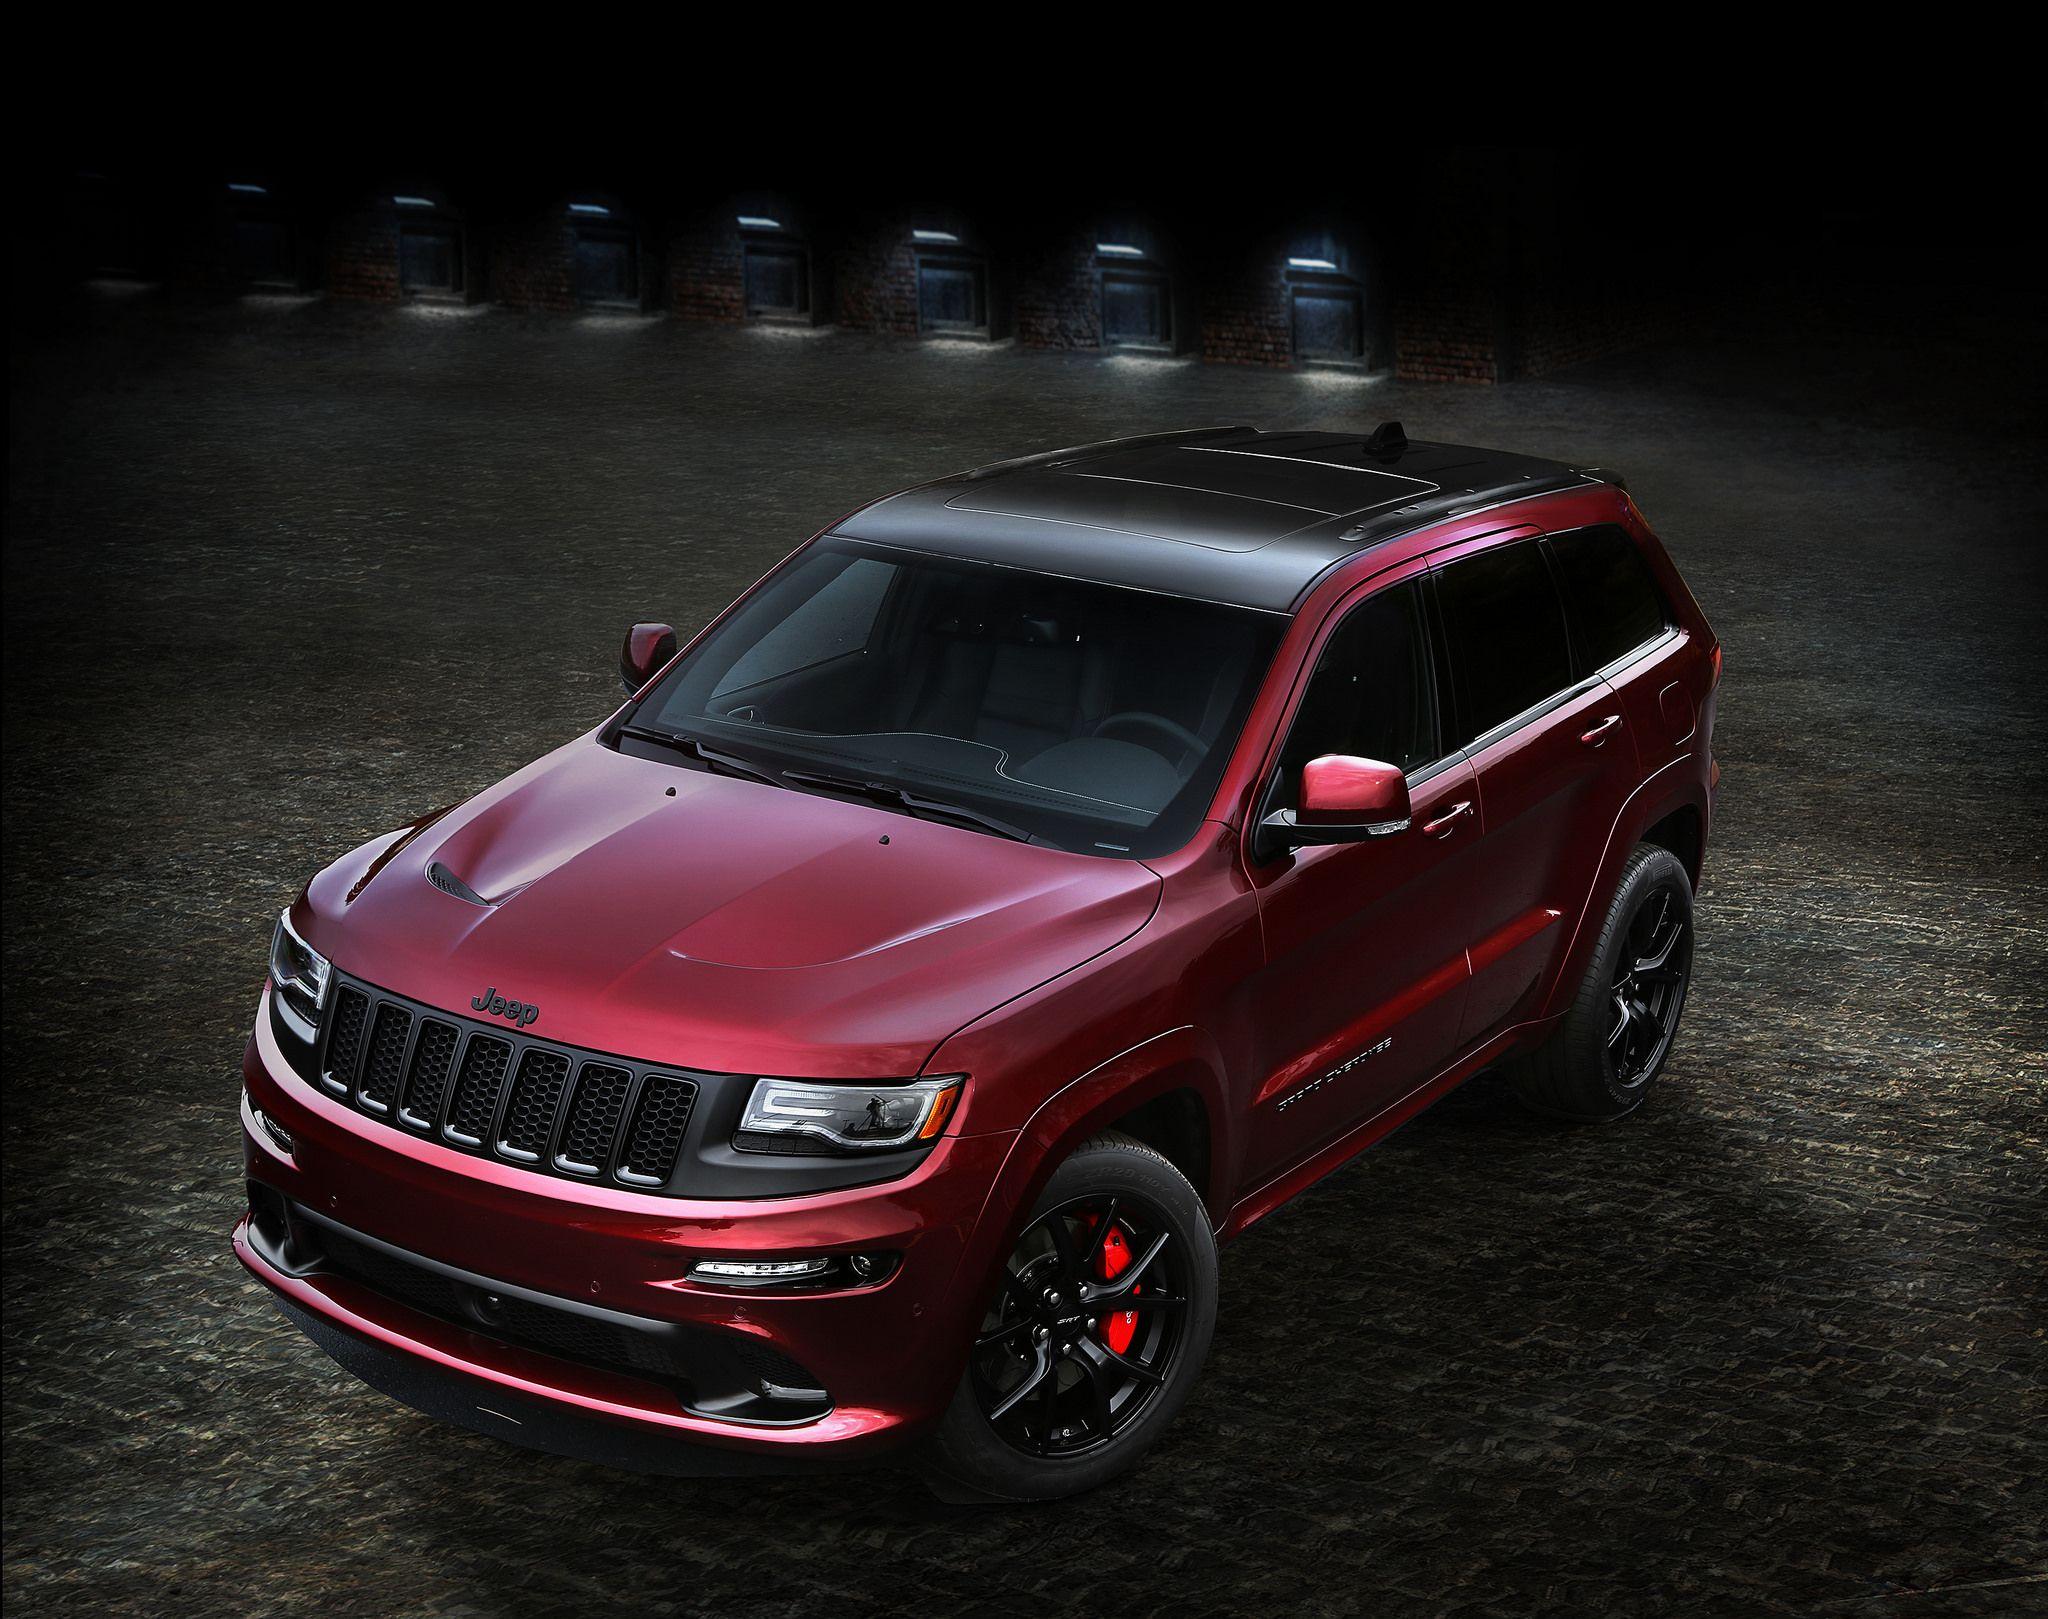 2016 Jeep Grand Cherokee Srt Night Features Gloss Black Roof Front Grille Bezels B And C Pillars And Jeep Grand Cherokee Srt Jeep Grand Cherokee Jeep Grand